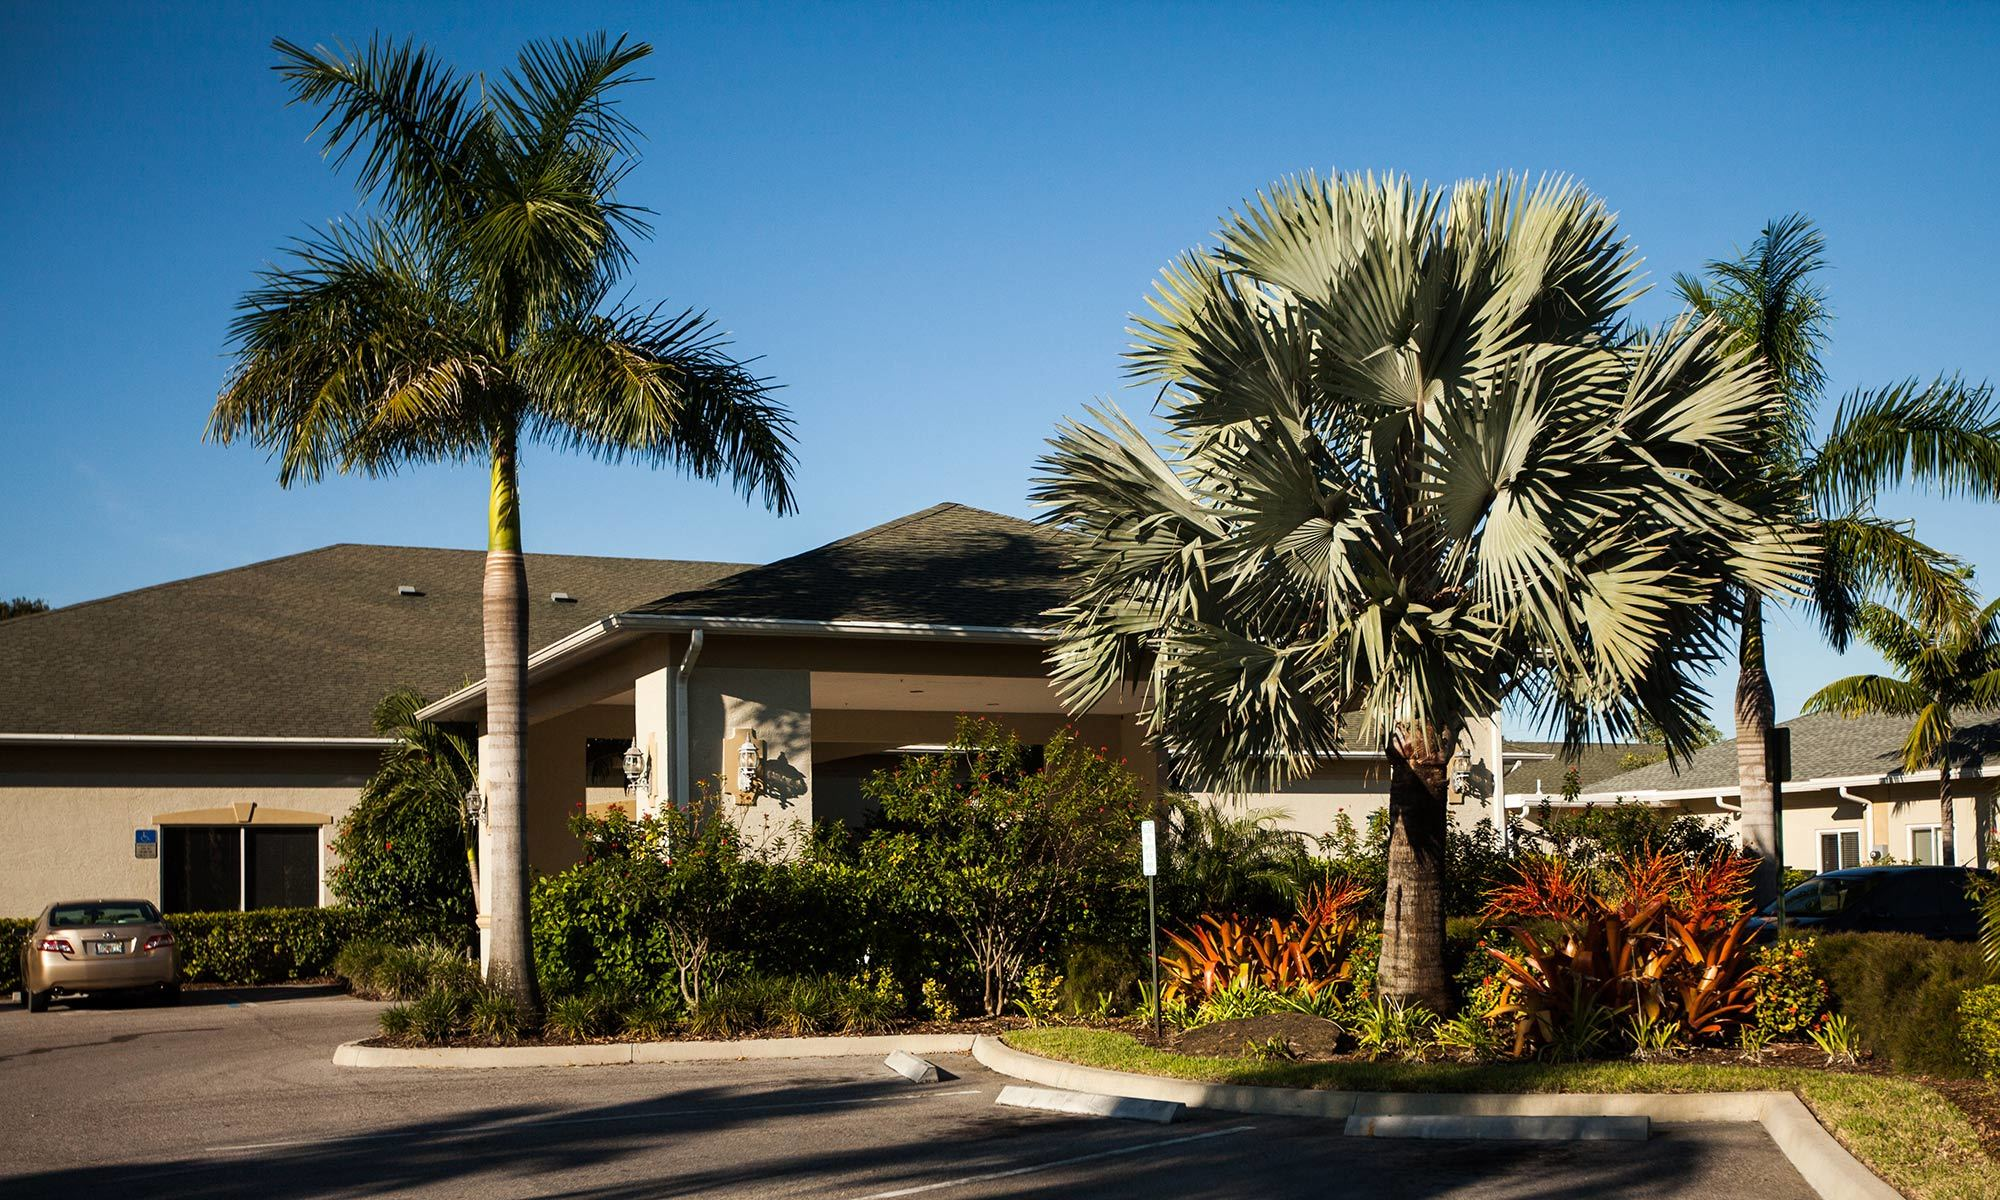 Senior living community in Fort Pierce has a clean exterior building